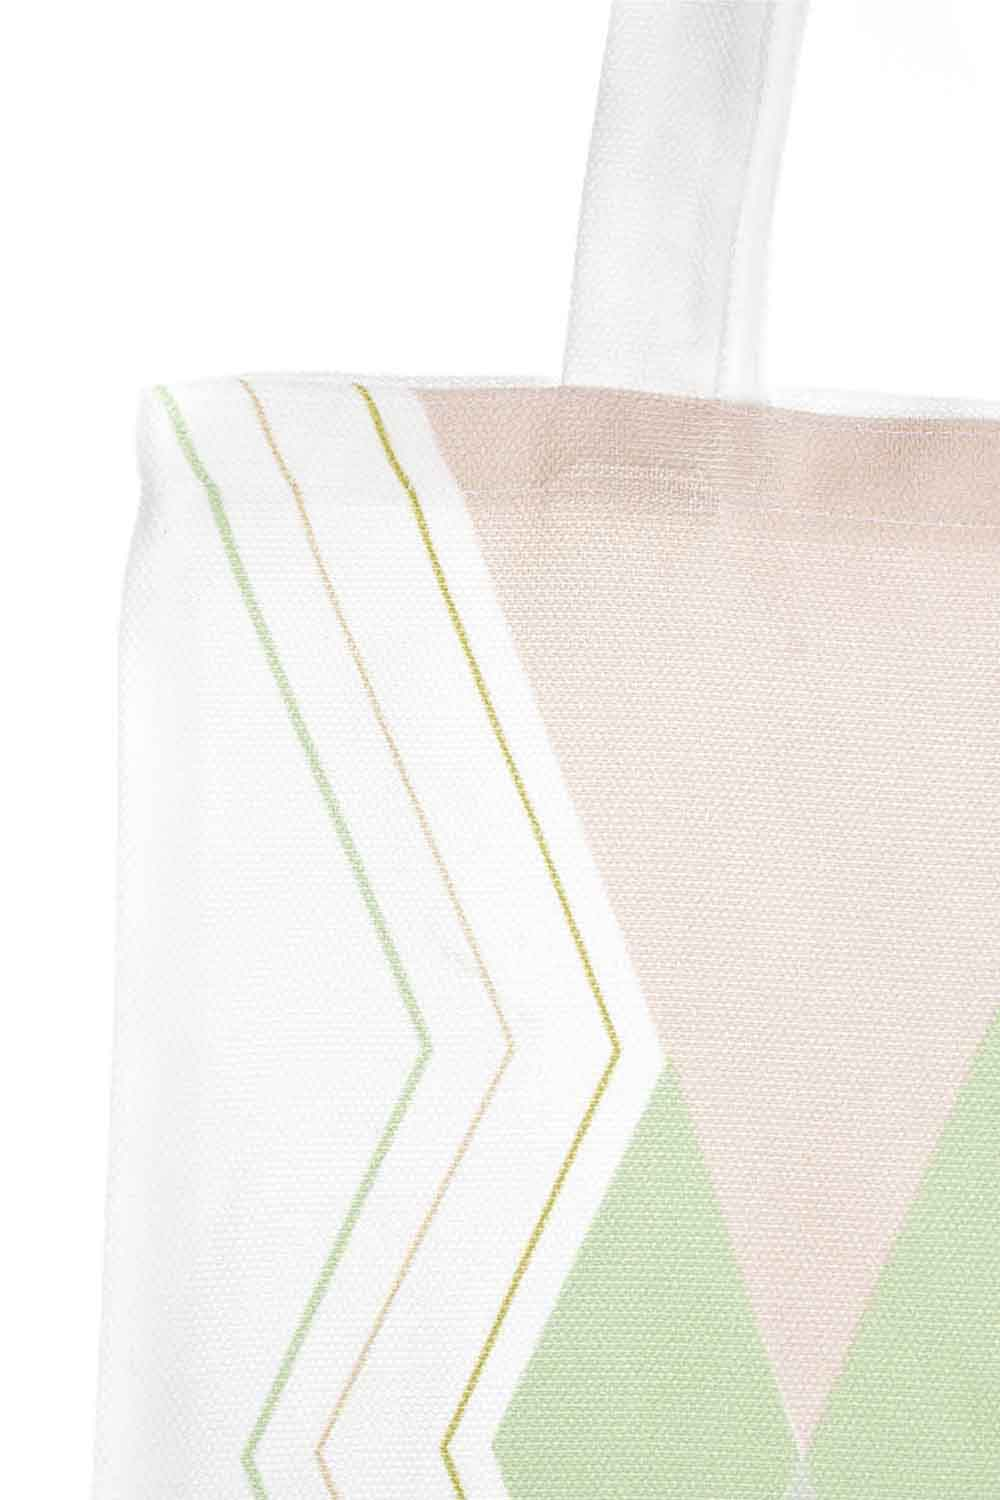 MIZALLE Cloth Bag (Tricolor) (1)